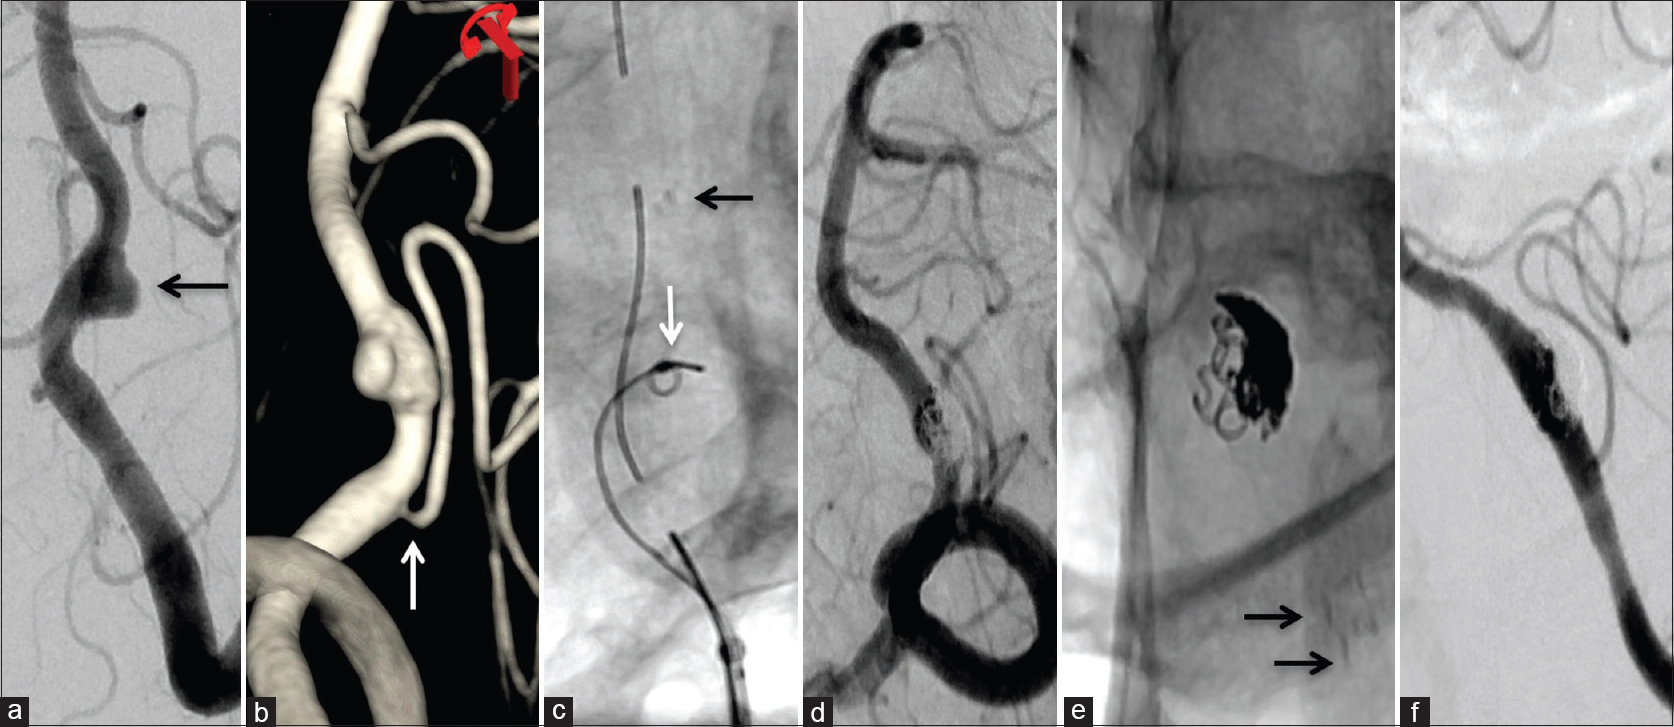 Figure 2: (a) A 40-year old female patient admitted with subarachnoid hemorrhage was noted to have a dissecting aneurysm involving the V4 segment of the left vertebral artery. (b) The three-dimensional rotational angiography showing the left V4 vertebral artery dissecting aneurysm; note the origin of left PICA proximal to the aneurysm along with a non-dominant contralateral vertebral artery. (c) Microcatheter with a few coil loops were deployed within the aneurysm sac prior to deployment of a laser cut stent. (d and e) Multiple small coils were deposited and were followed by deployment of a second laser cut stent within the previous one. Note the circumferential coils around the stent. (f) On follow up, complete occlusion of the aneurysm sac occurred along with straightening of the V4 segment of the vertebral artery